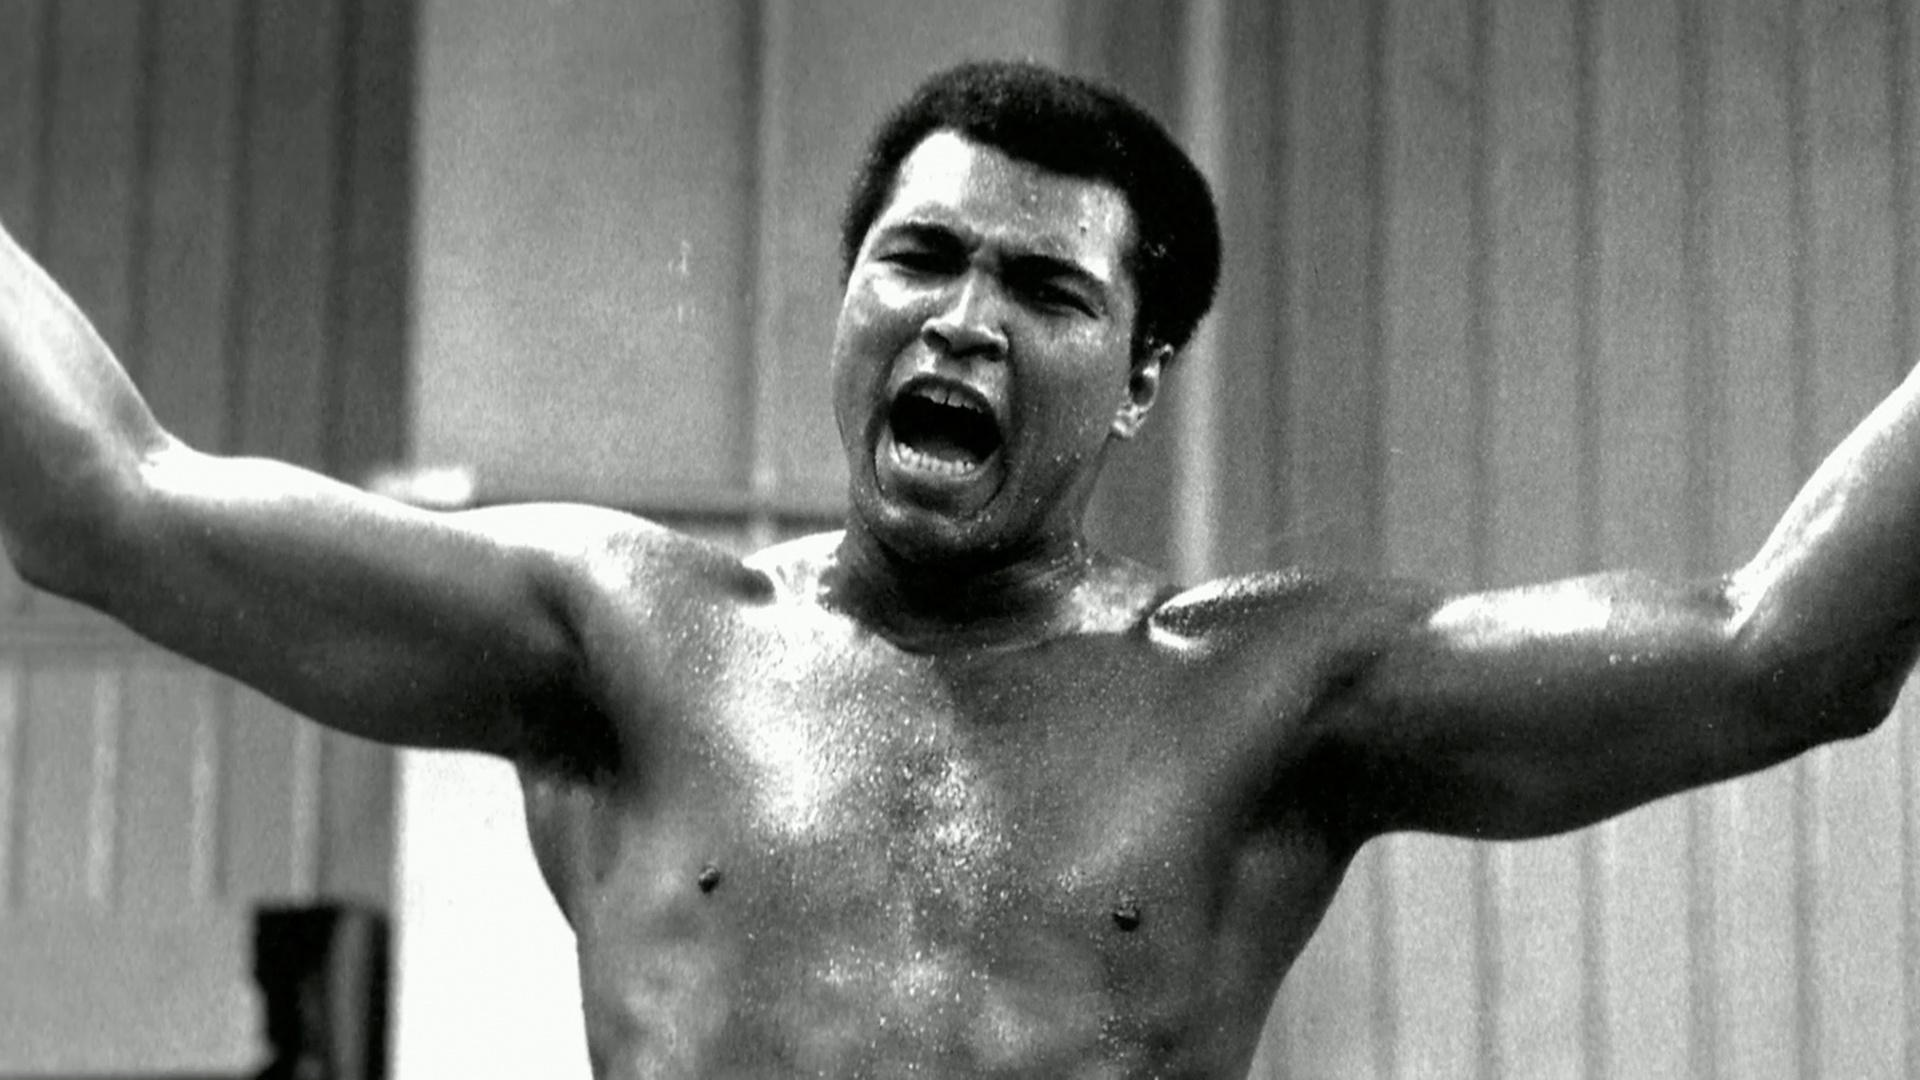 an essay on the rise and fame of muhammad ali and the islam 2013-03-20  and the rise of the umayyads when muhammad first began  and they were threatened by the changes that islam brought muawiya, the first umayyad  but a new state based on islam abd al-malik solidified control of.